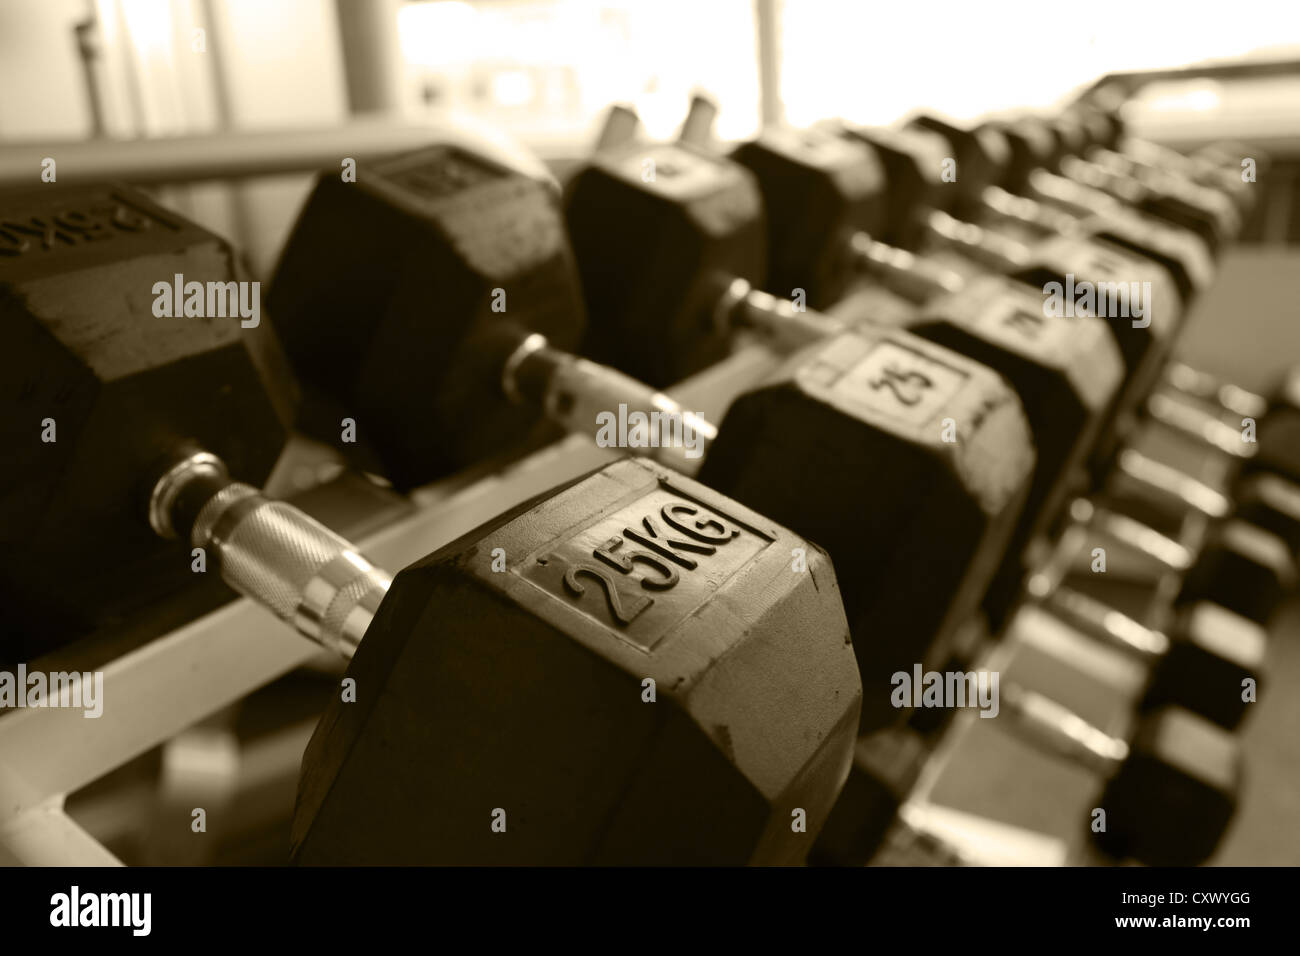 dumbbell weights exercise gym workout equipment - Stock Image